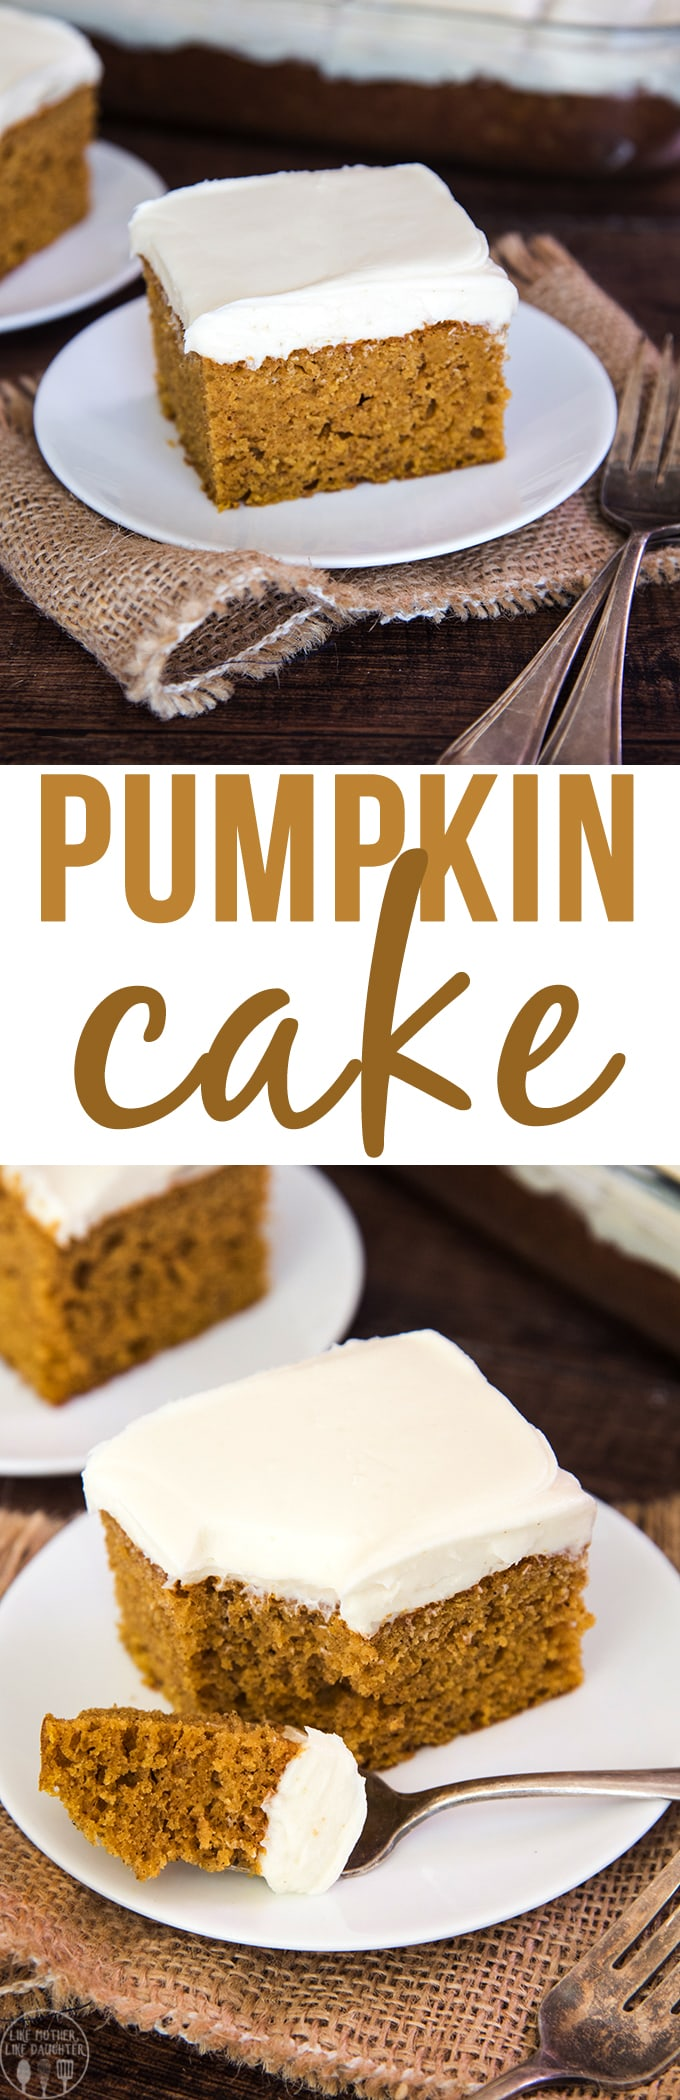 Pumpkin cake topped with the best cream cheese frosting is the perfect fall dessert, easy to make, super moist and loaded with delicious pumpkin flavor.